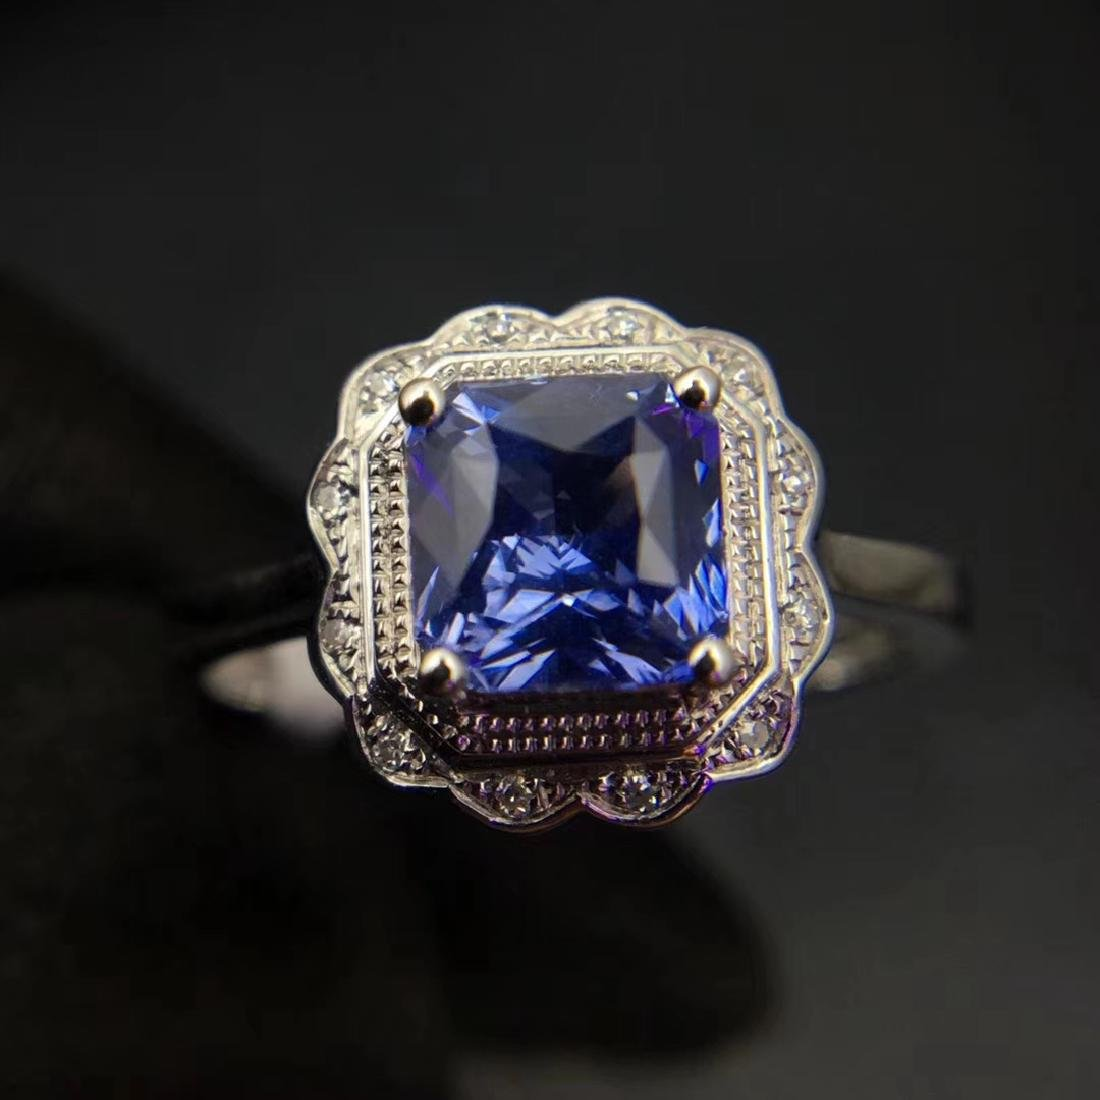 1.24ct Sapphire Ring in 18kt White Gold